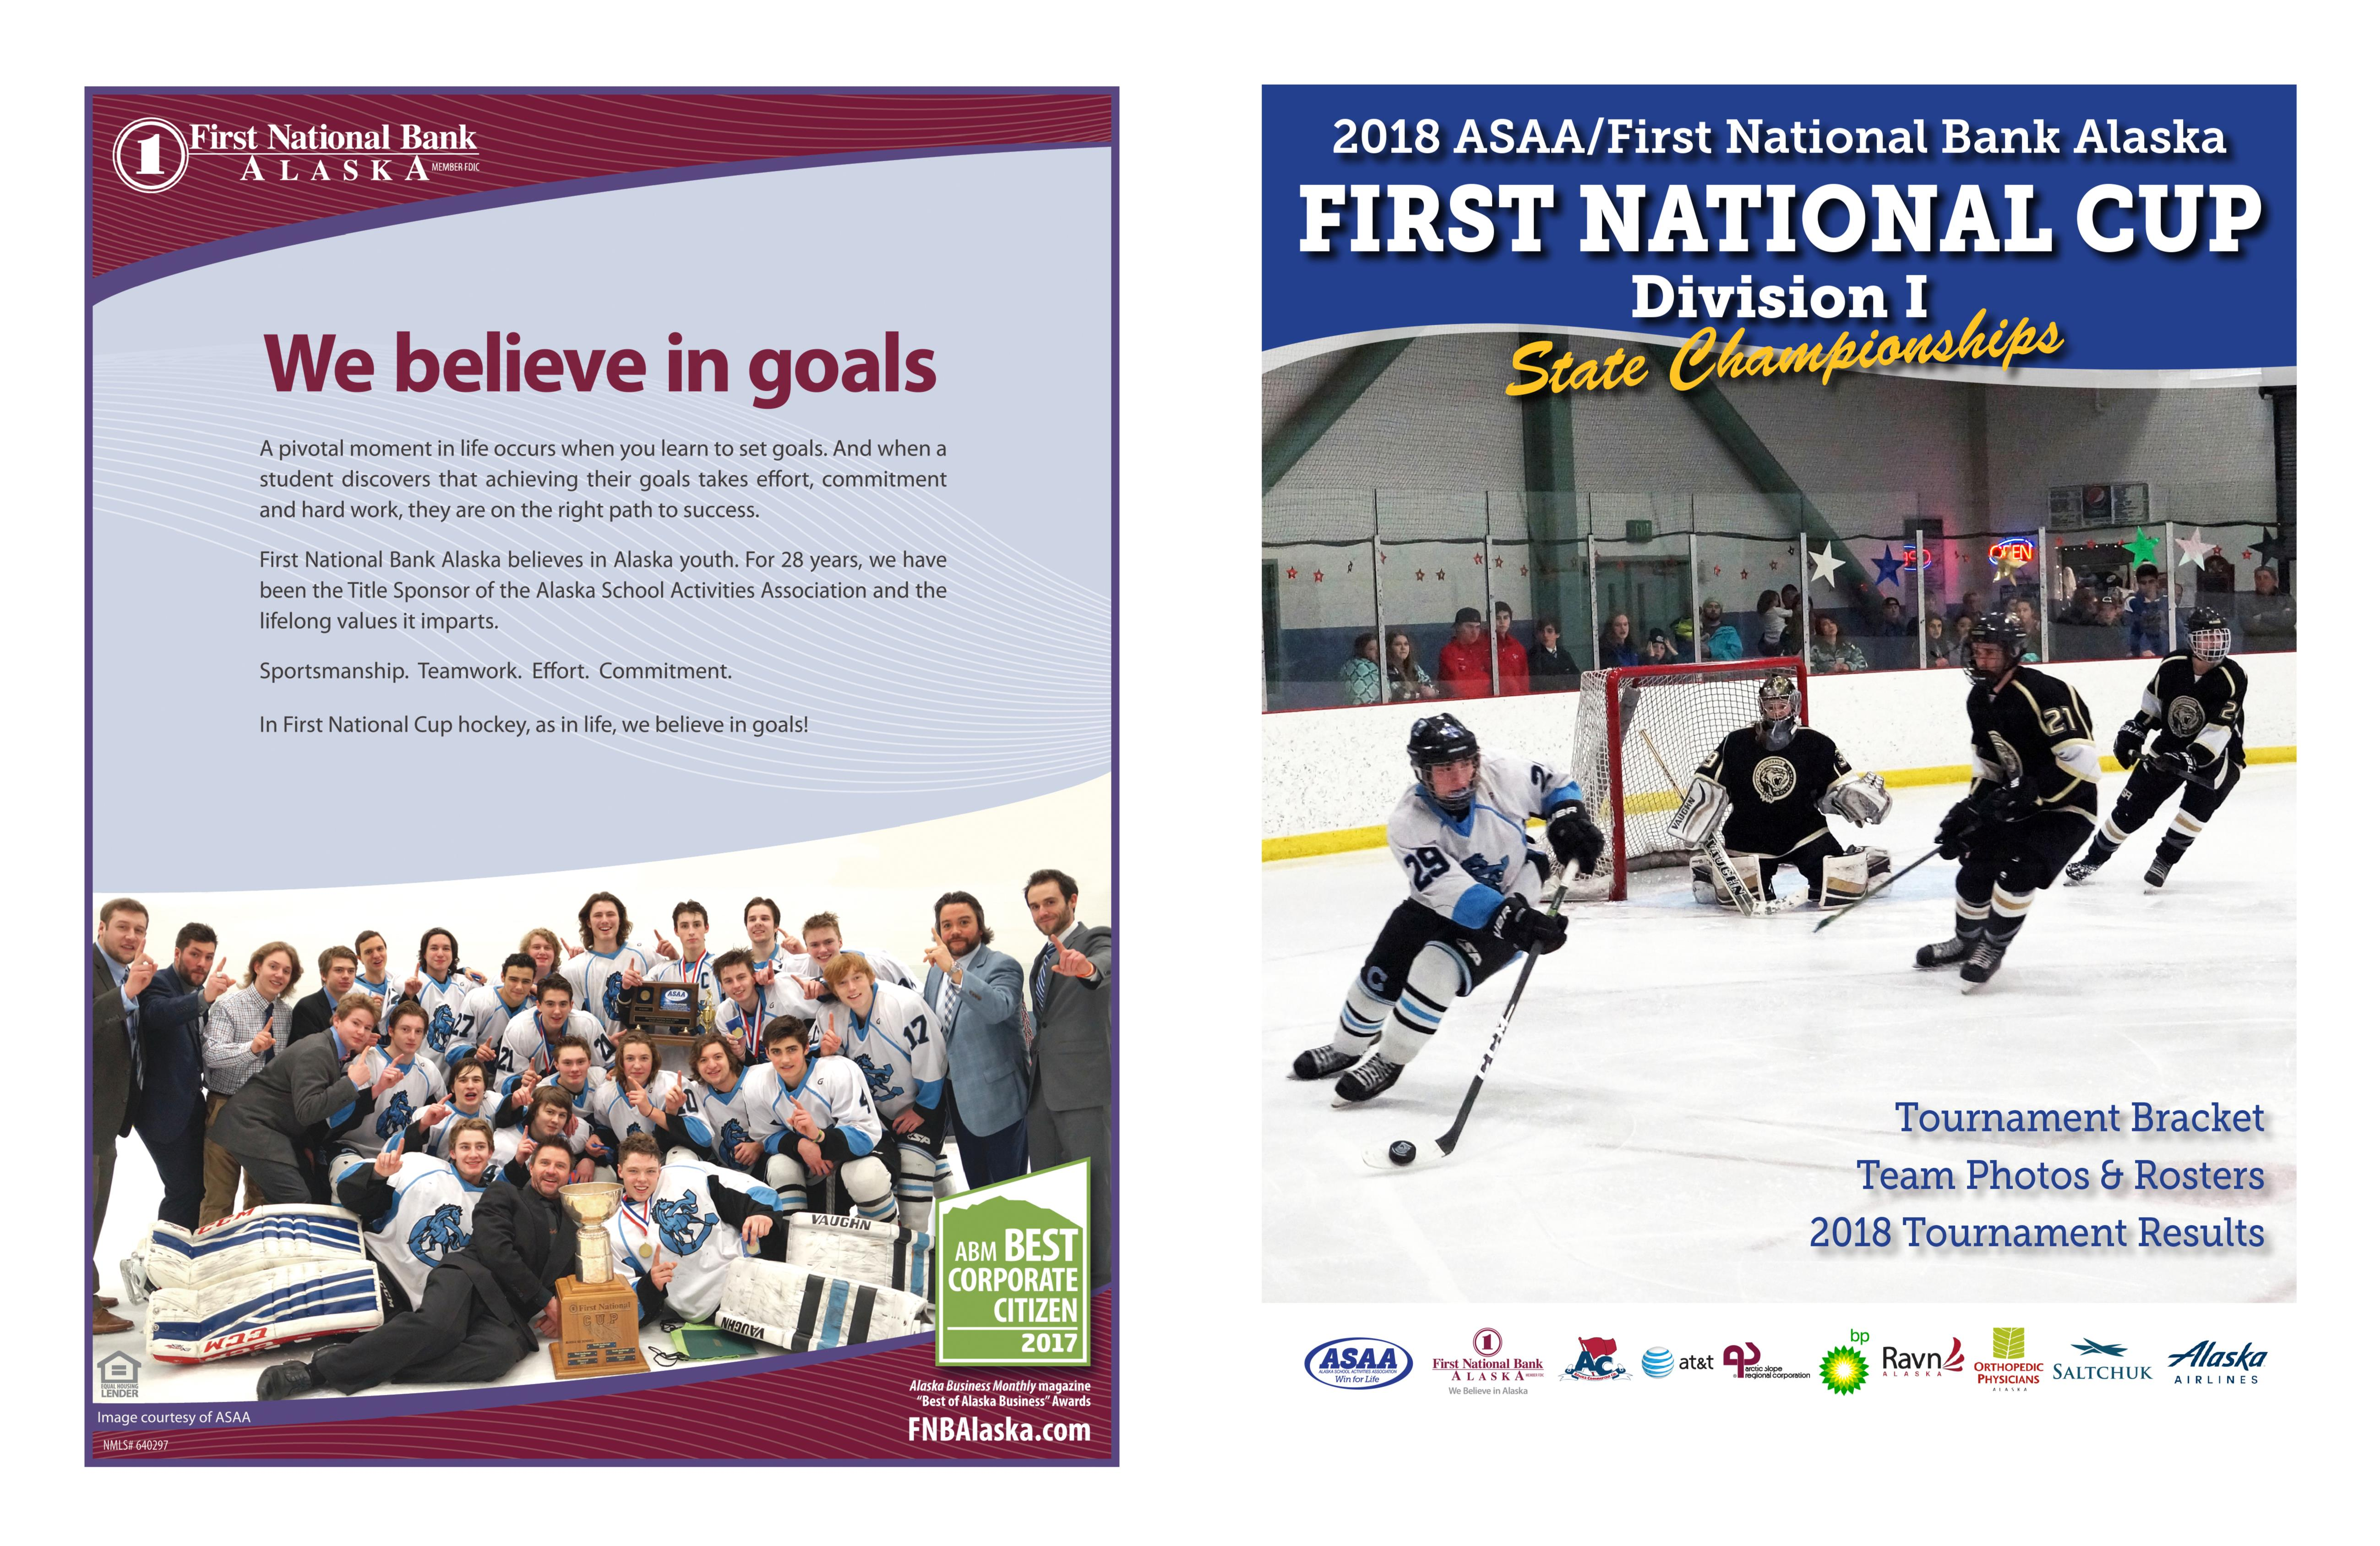 2018 ASAA First National Cup D1 Hockey State Championship Program cover image